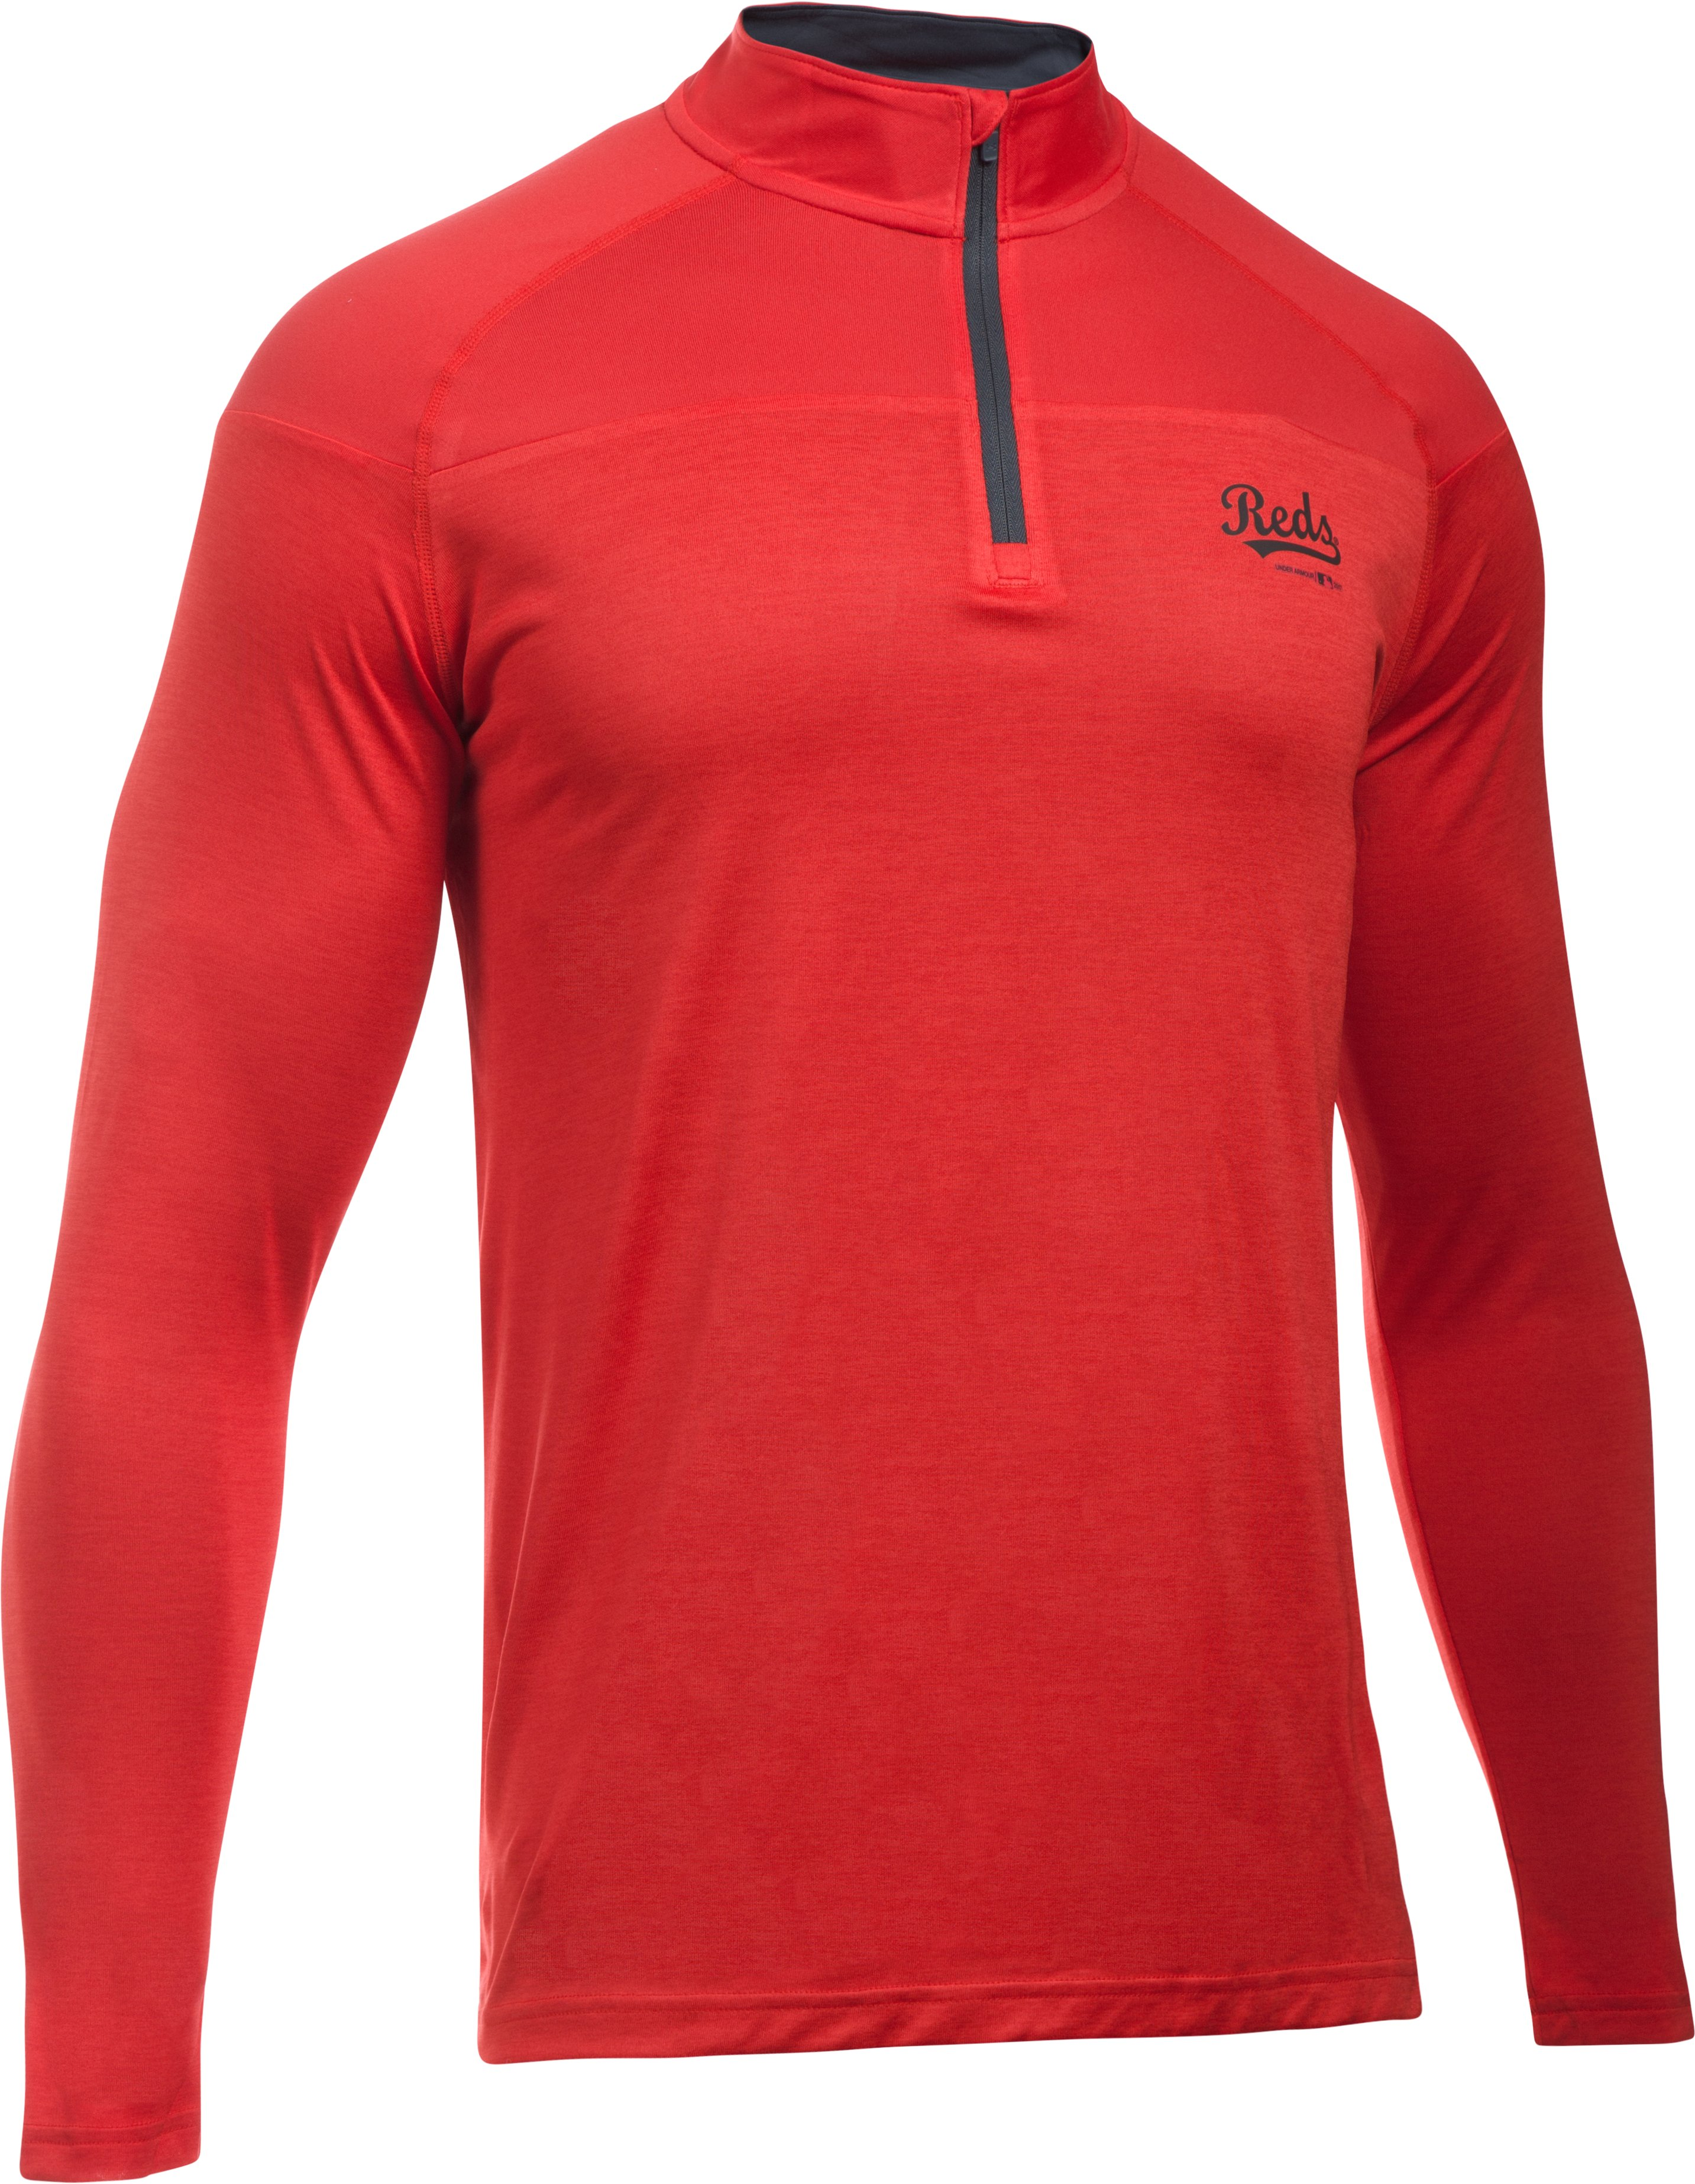 Men's Cincinnati Reds UA Tech™ ¼ Zip, Red, undefined